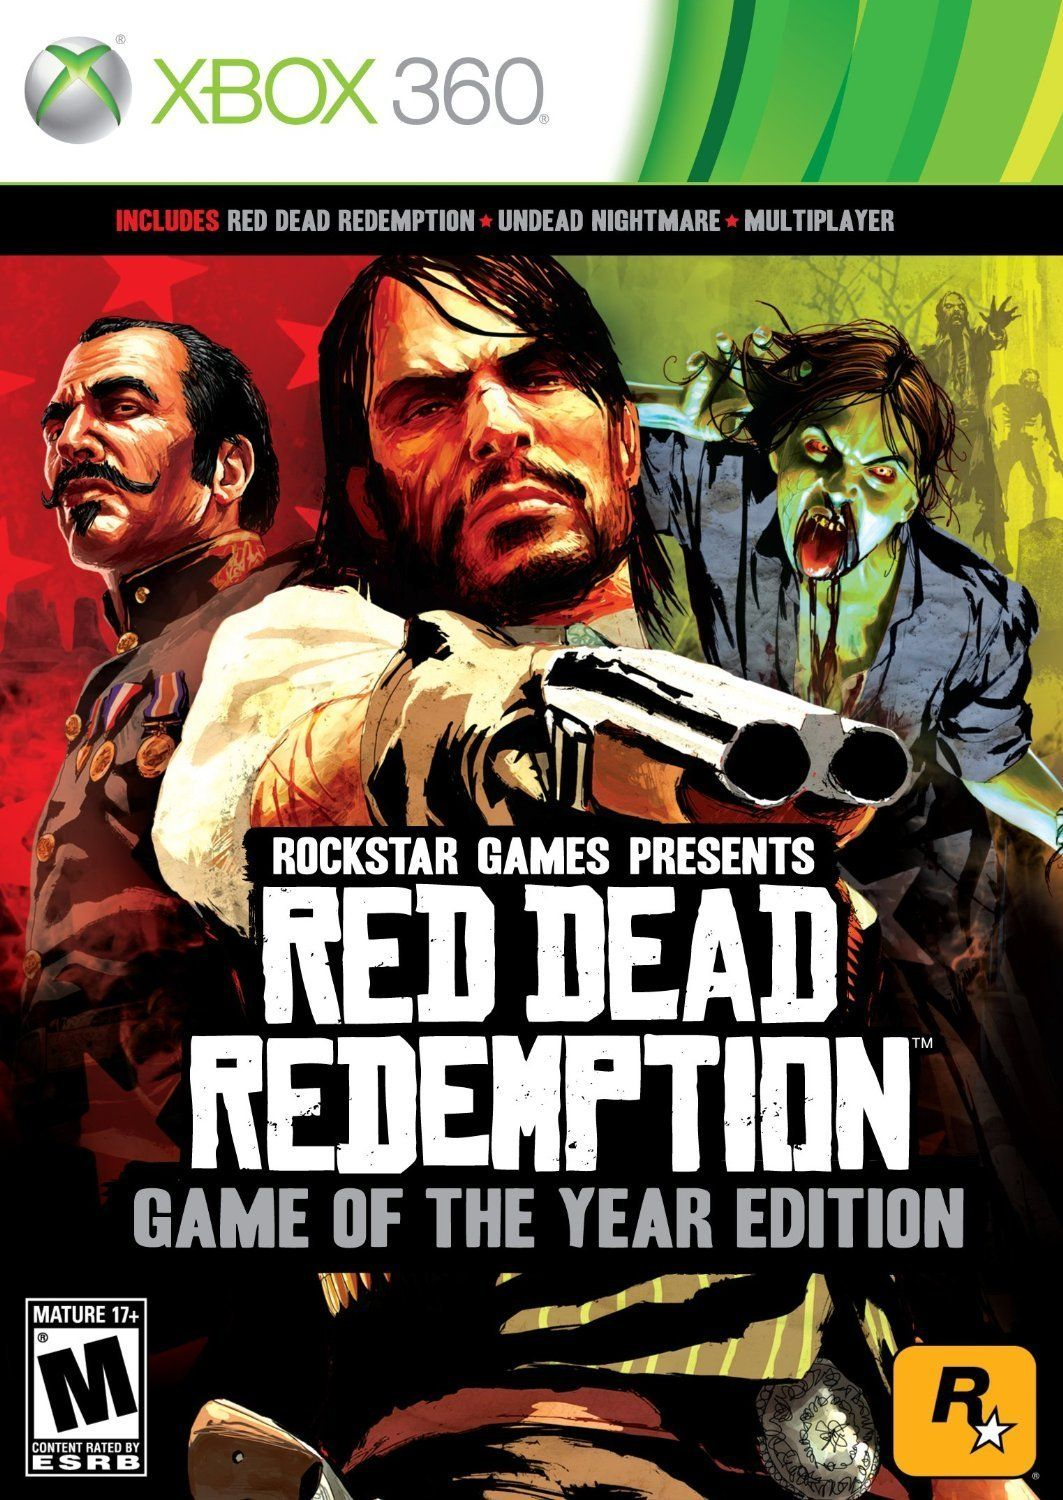 Jack Of All Games Red Dead Redemption Juego Xbox 360 Game Of The Year Edition Amazon Com Mx Videojuego Juegos De Xbox One Juegos Para Xbox 360 Xbox 360